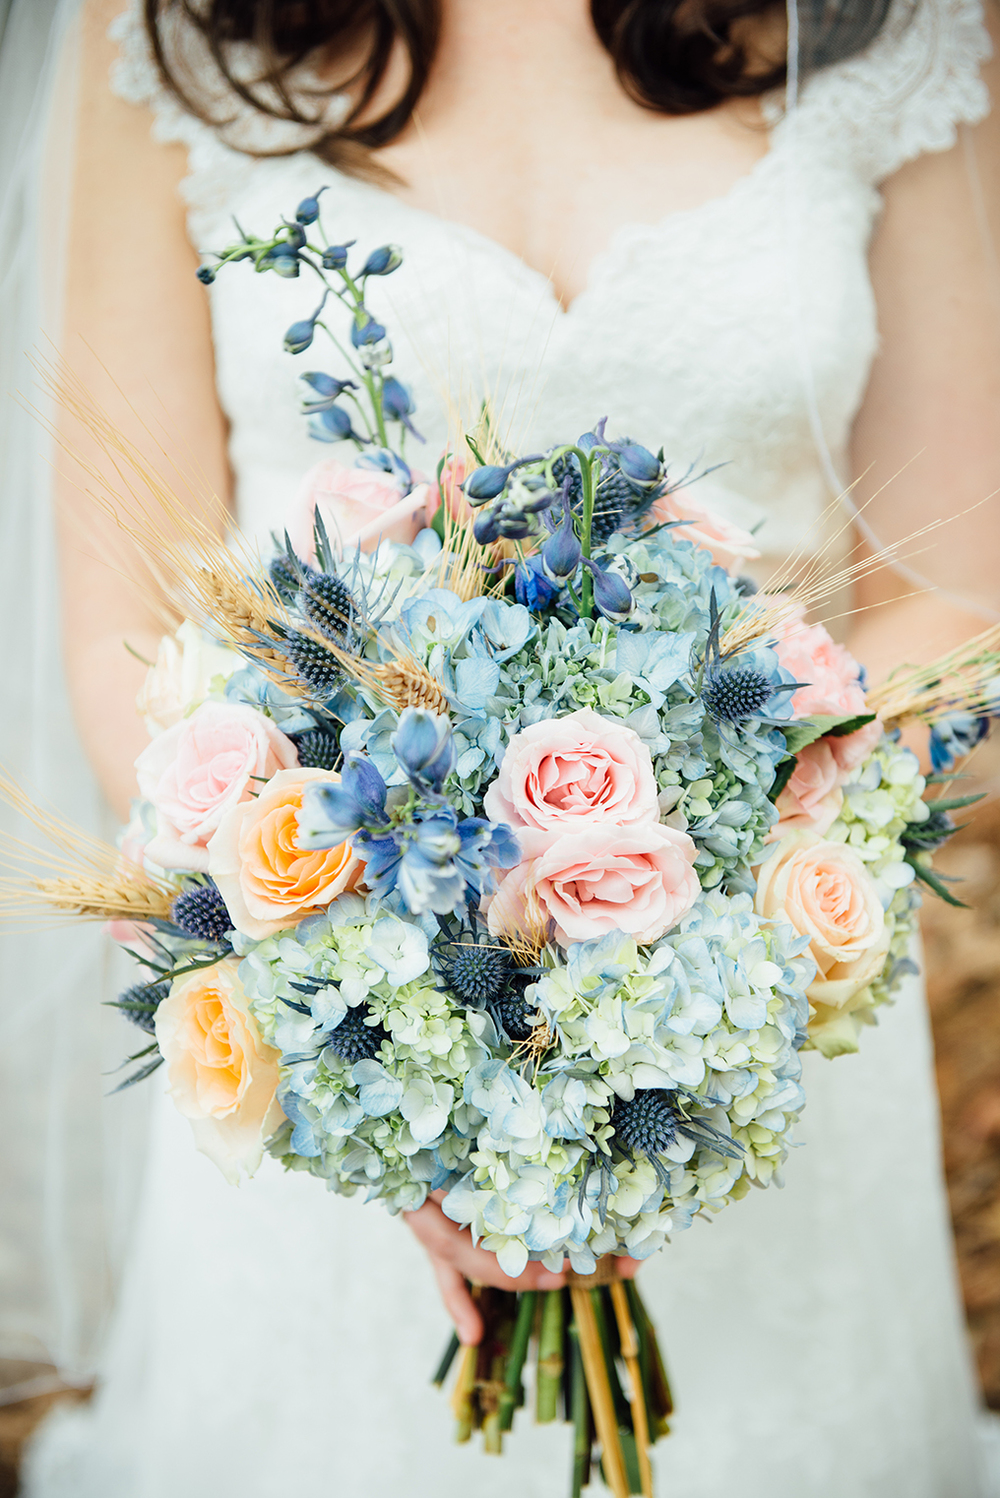 lindsey ann photography, alabama wedding, wedding flowers, pricing, investment, alabama bride, photography, wedding